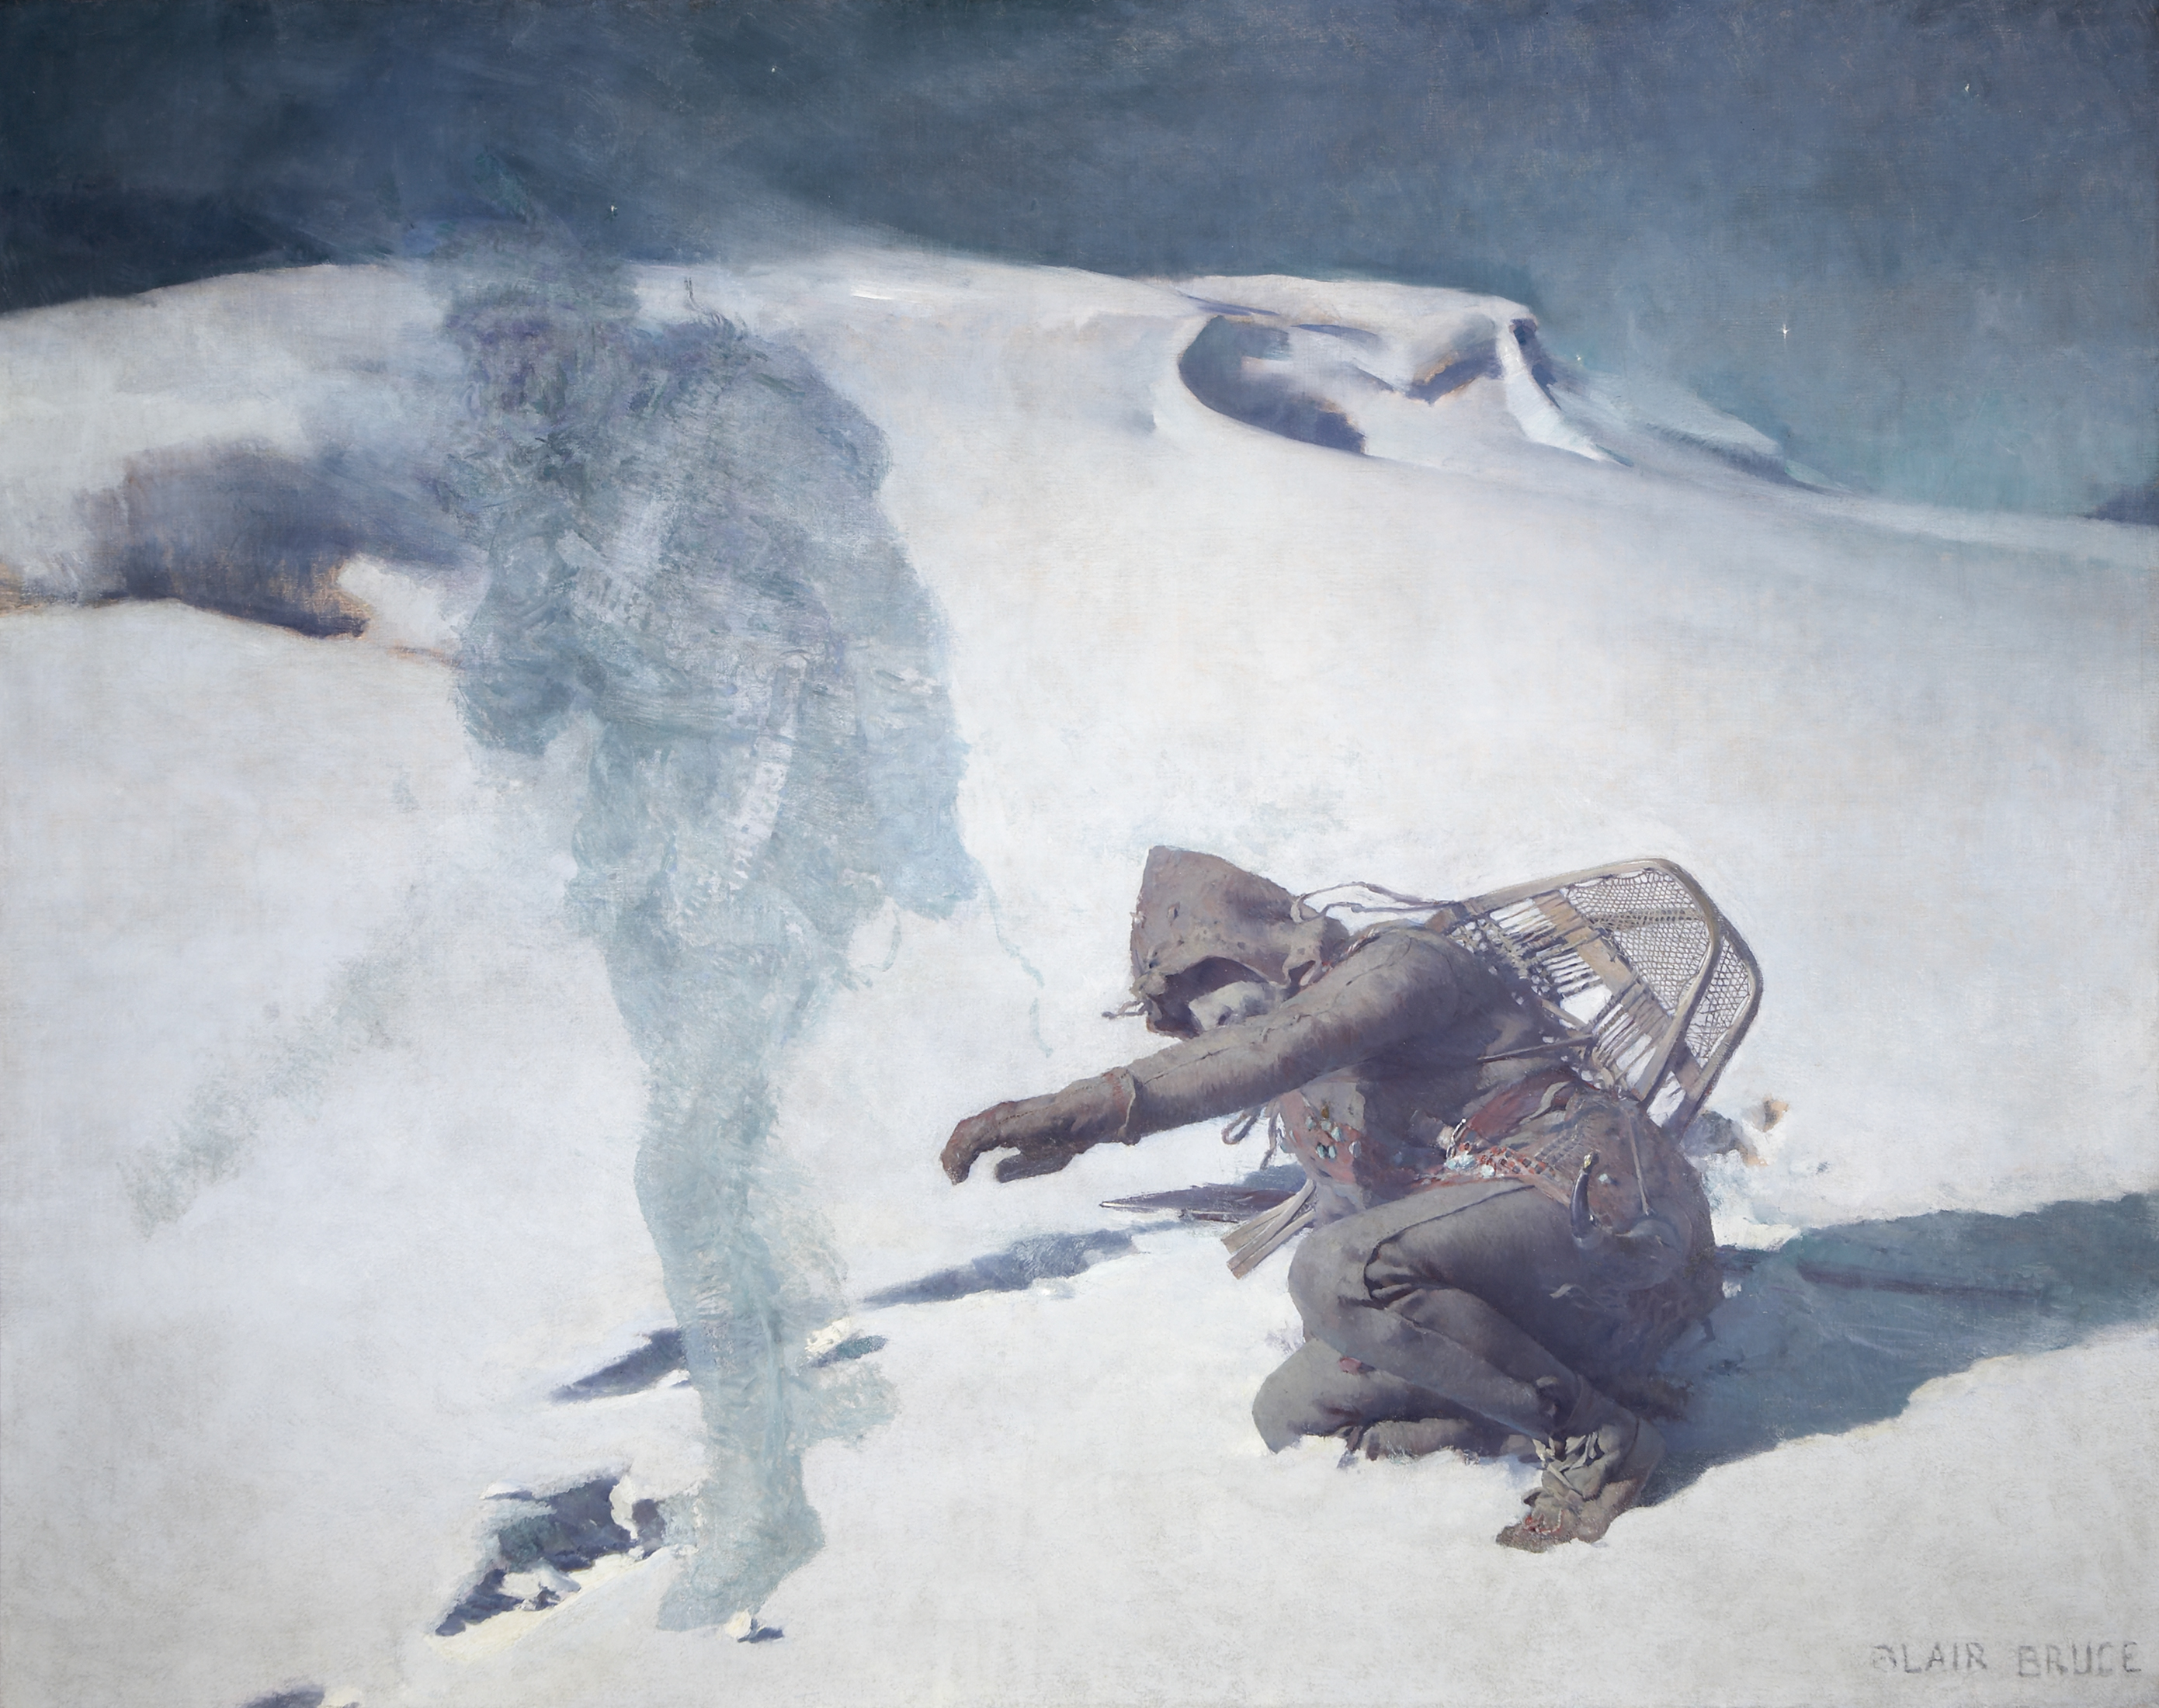 A man cowers on a snow-covered plain with his left arm outstretched in a protective or pleading gesture. At the left, a hazy figure walks toward the edge of the frame, ignoring the prostrate man.